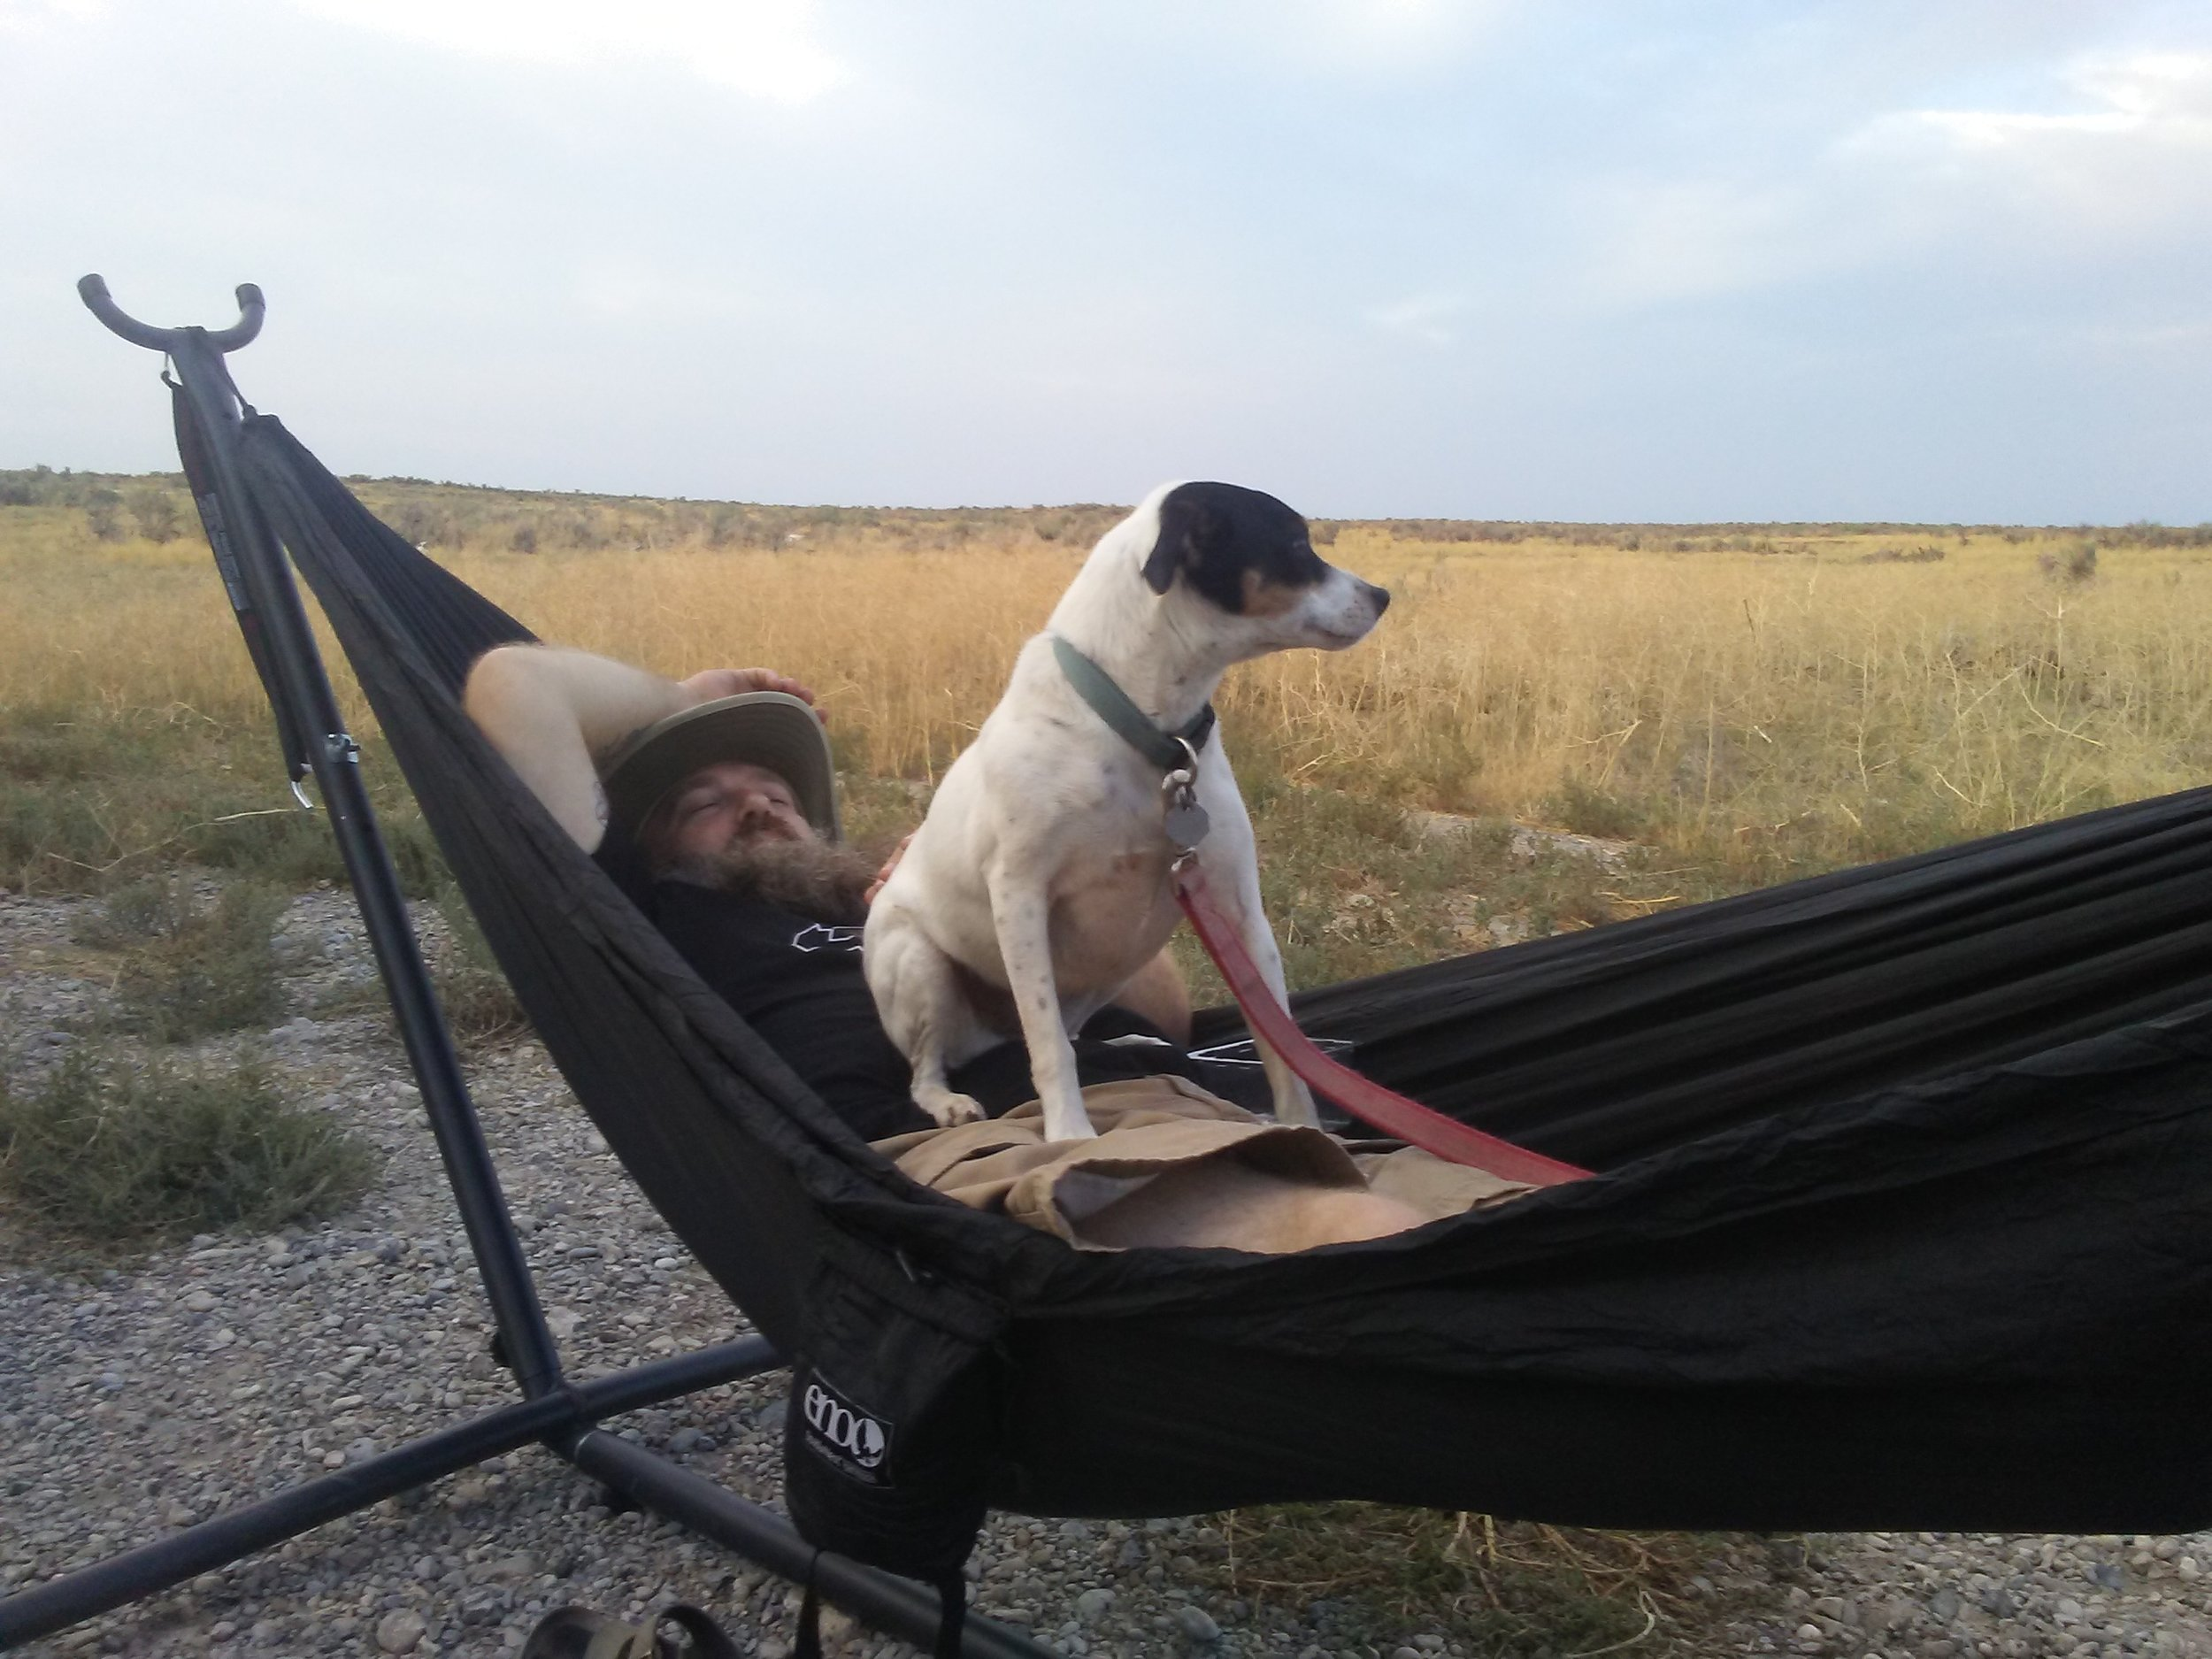 Ollie standing guard while I chill in the hammock